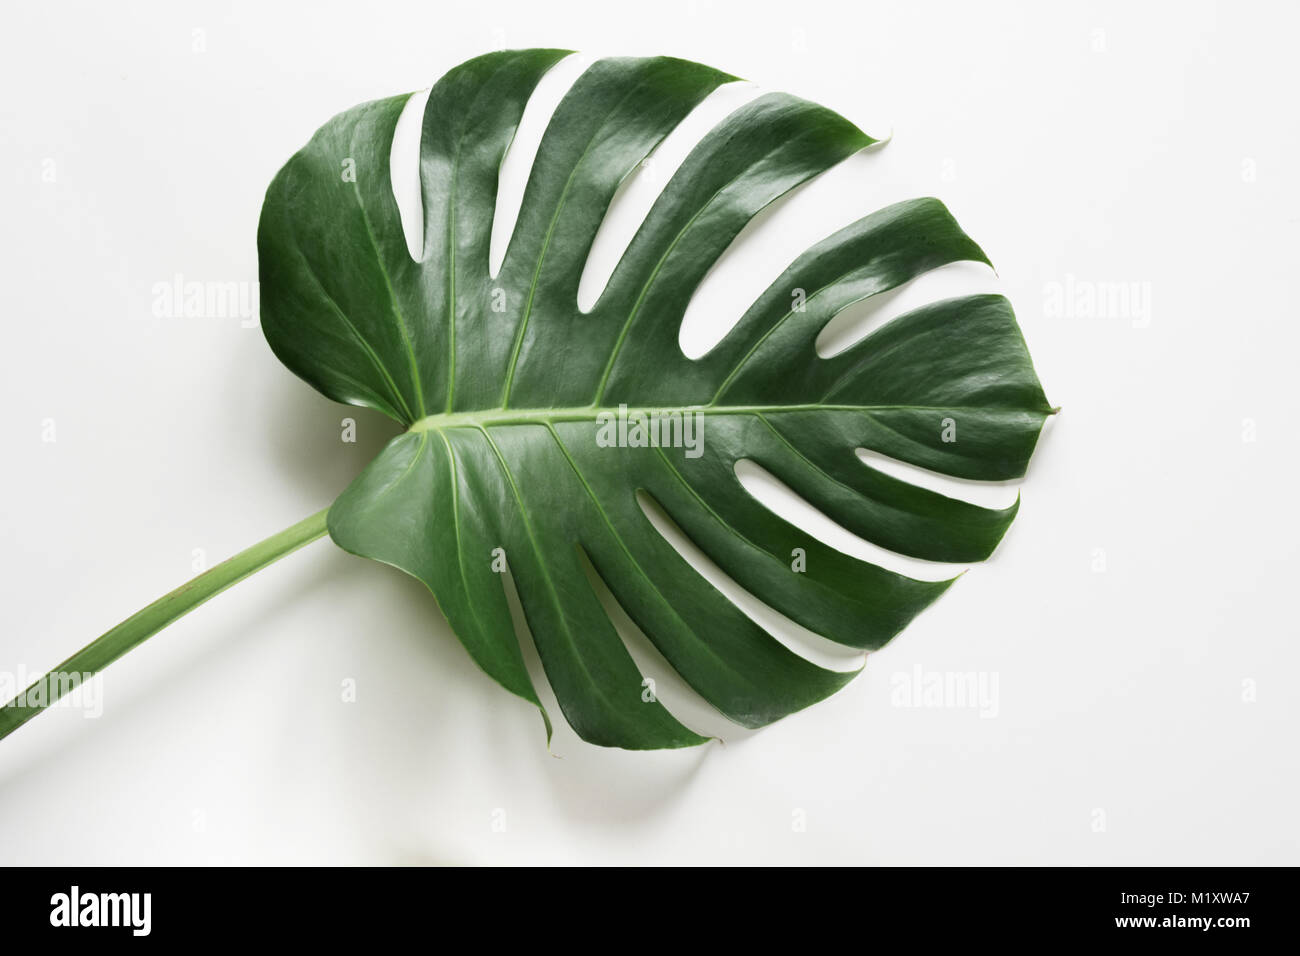 Single leaf of Monstera on white background. Close up, isolated with copy space. - Stock Image